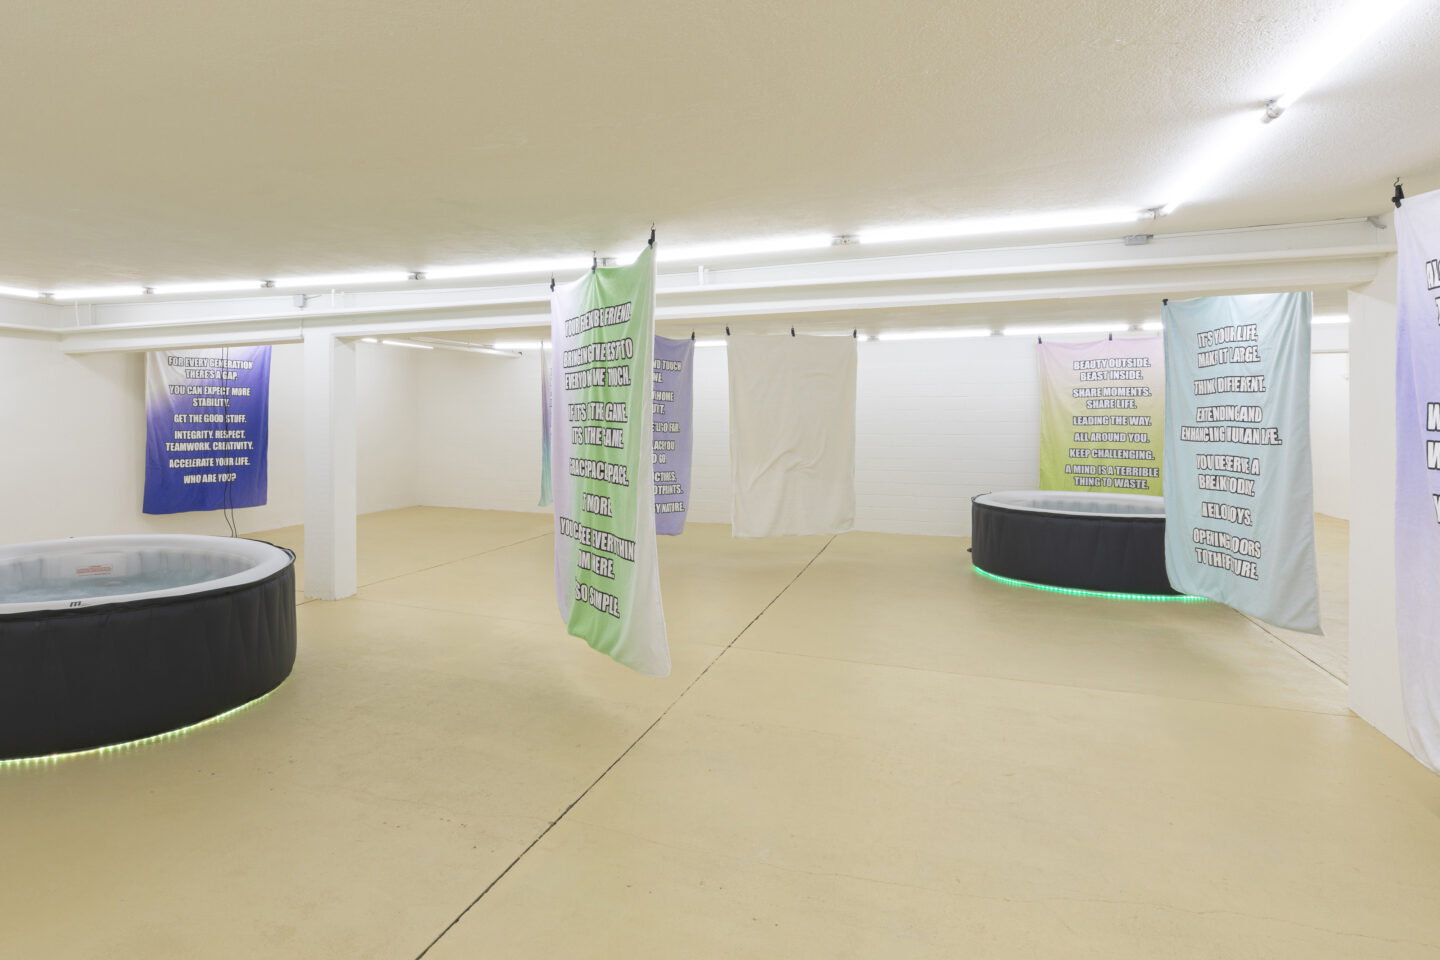 Exhibition View Clifford E. Bruckmann Soloshow «six degrees of memories, decisions, potentials» at unanimous consent, Zurich, 2020 / Photo: Michal Florence Schorro / Courtesy: the artist and unanimous consent